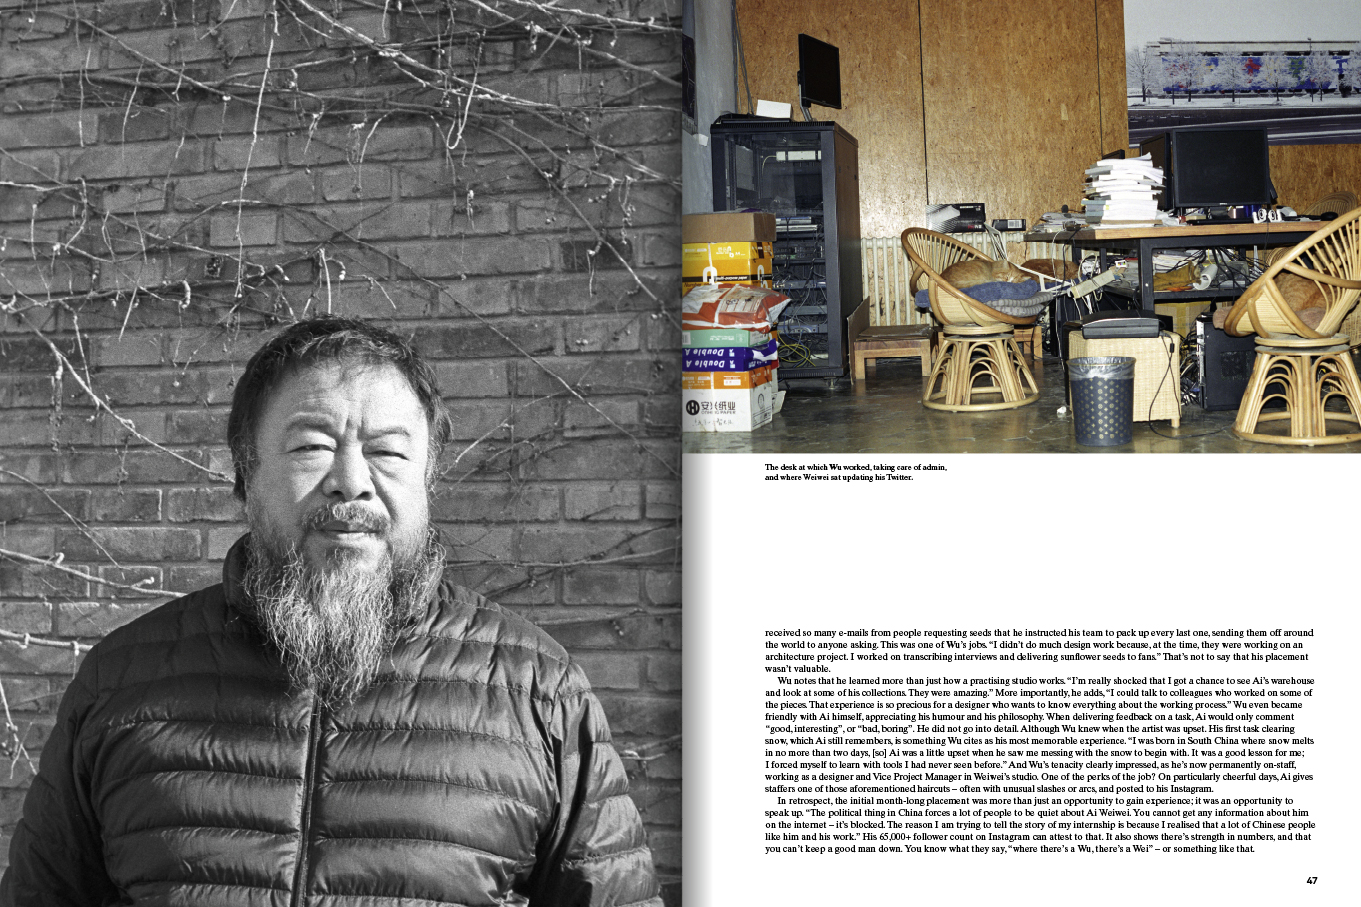 1 Granary: page spread on Ai Wei Wei